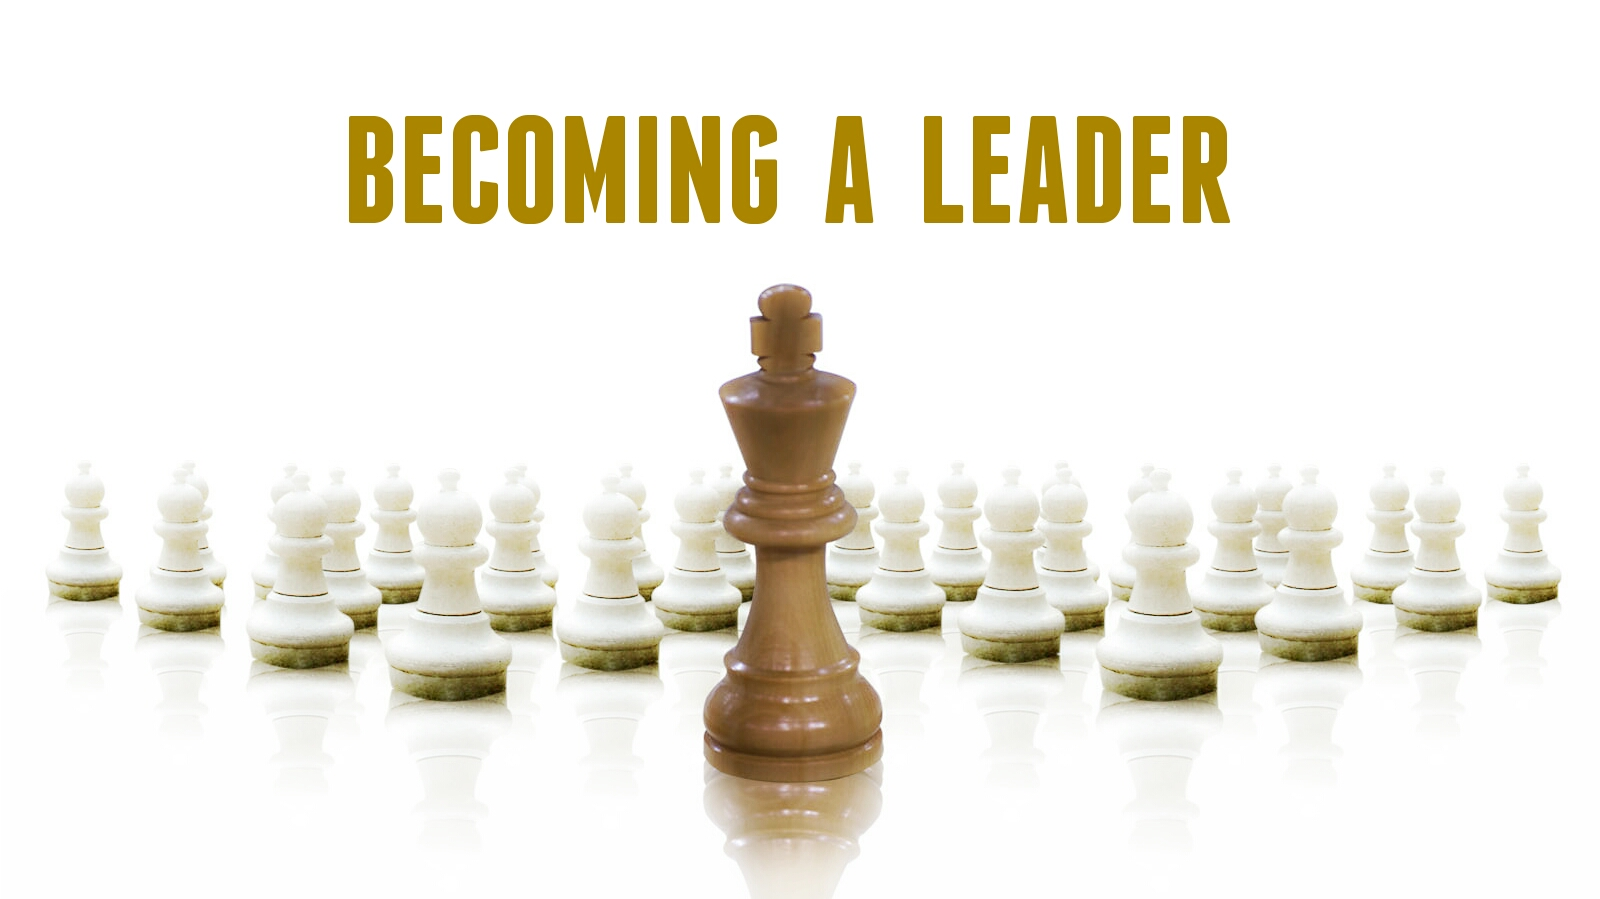 becoming a leader Buy on becoming a leader 2nd revised edition by warren bennis (isbn: 9780099269397) from amazon's book store everyday low prices and free delivery on eligible orders.